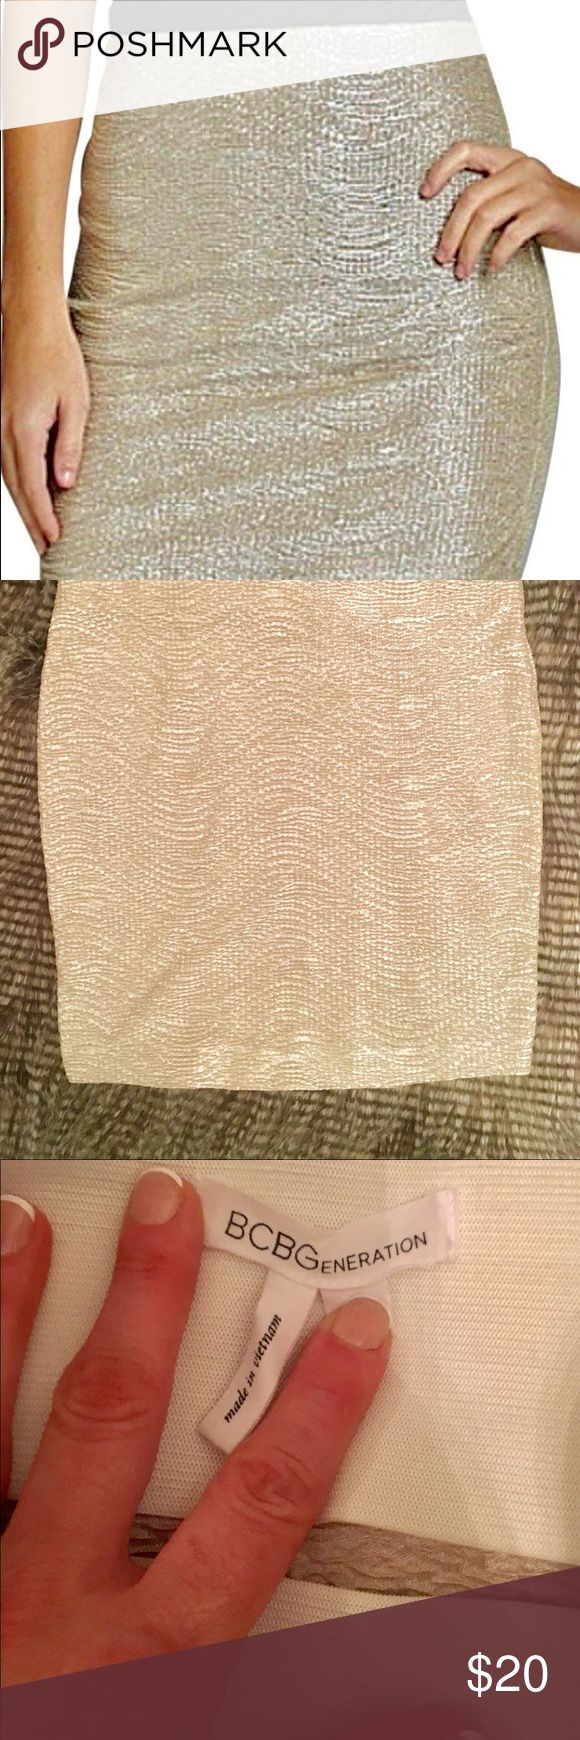 BCBG high waisted mini skirt XS Worn once. In good condition.  BCBG high waisted mini skirt in a beautiful gold metallic color with slight silver undertones.This skirt is def NOT see-through. It has a thick, but not tight, waste band around the waist makes this skirt extremely comfortable. I have never worn this (a shame, I know). It is an absolute wardrobe must-have for the holiday season! It looks amazing with black tights, ankle booties or knee high boots, and a v-neck sweater…